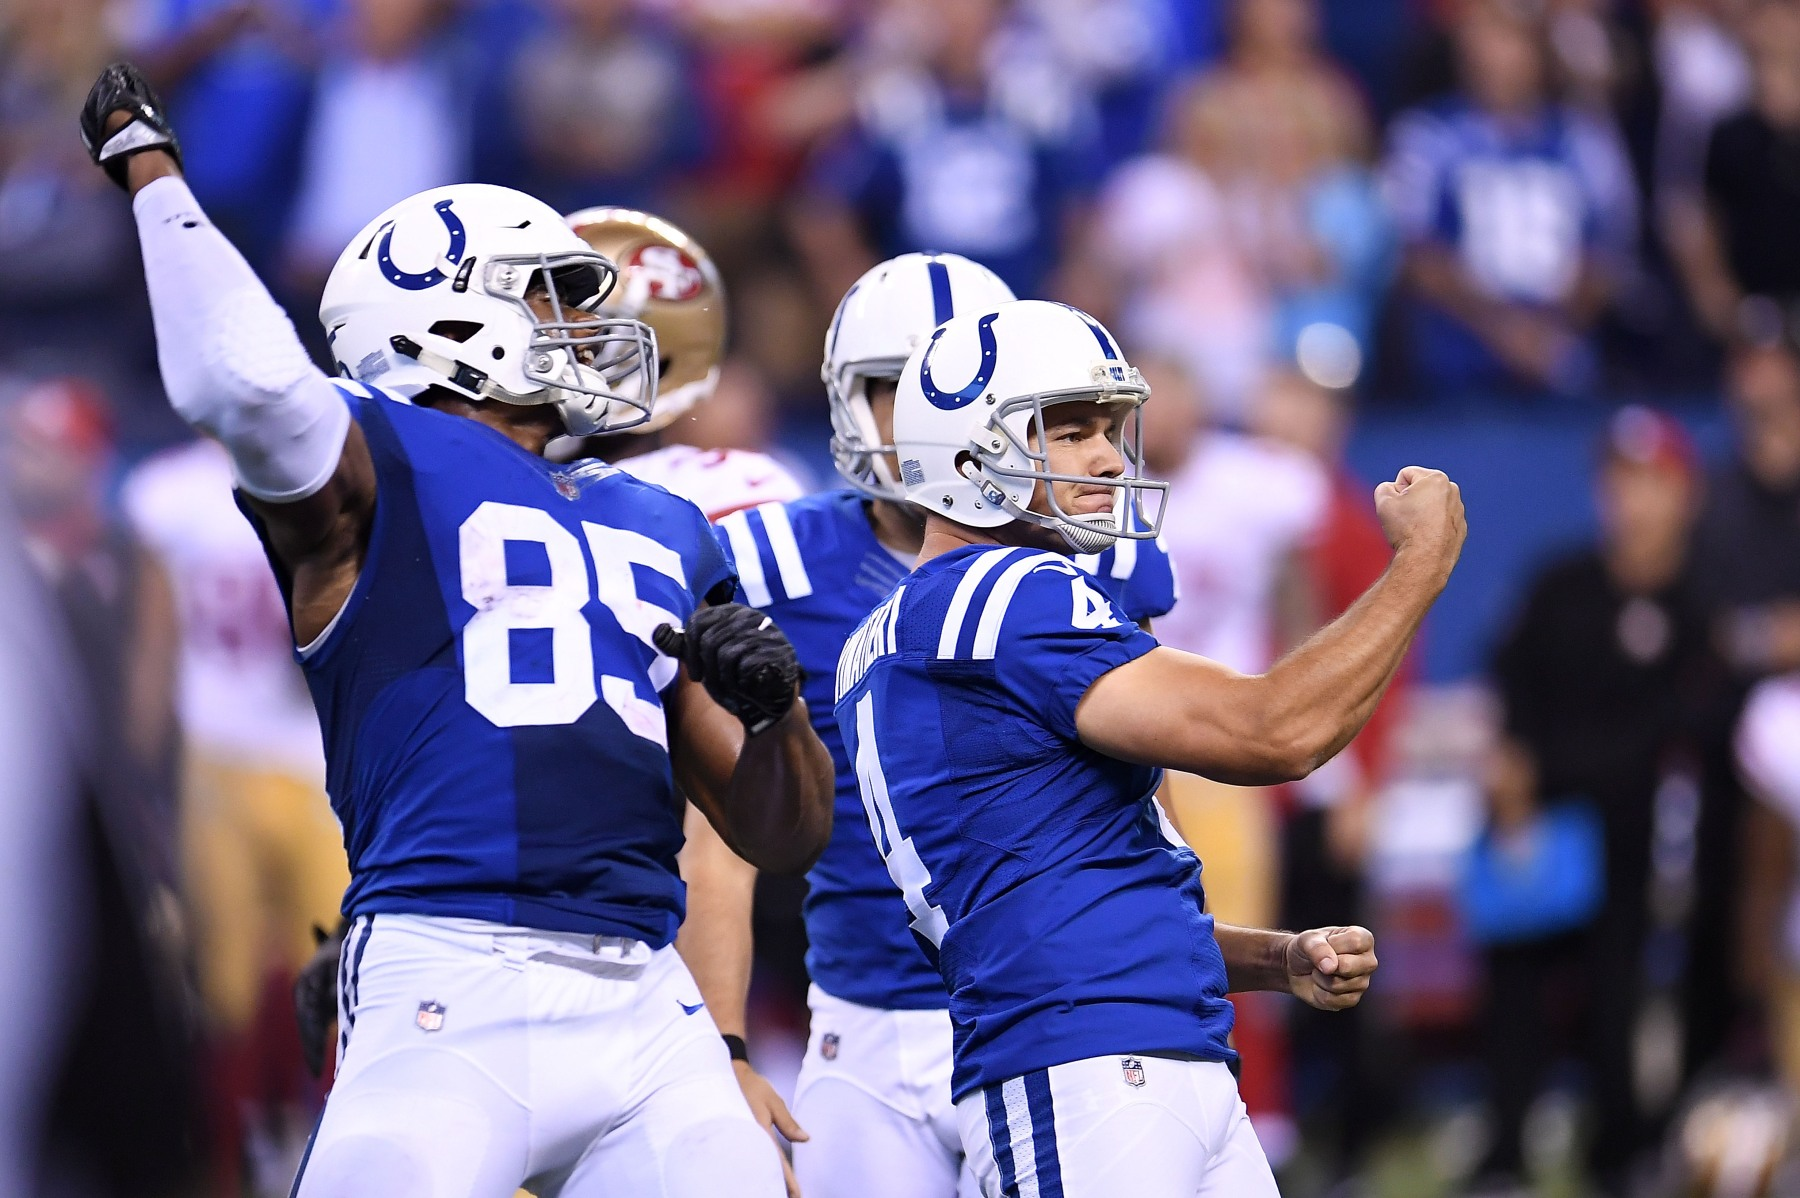 Adam Vinatieri #4 of the Indianapolis Colts celebrates after making a 51 yard field goal in overtime to defeat the San Francisco 49ers 26-23 at Lucas Oil Stadium on October 8, 2017 in Indianapolis, Indiana.  (Photo by Stacy Revere/Getty Images)